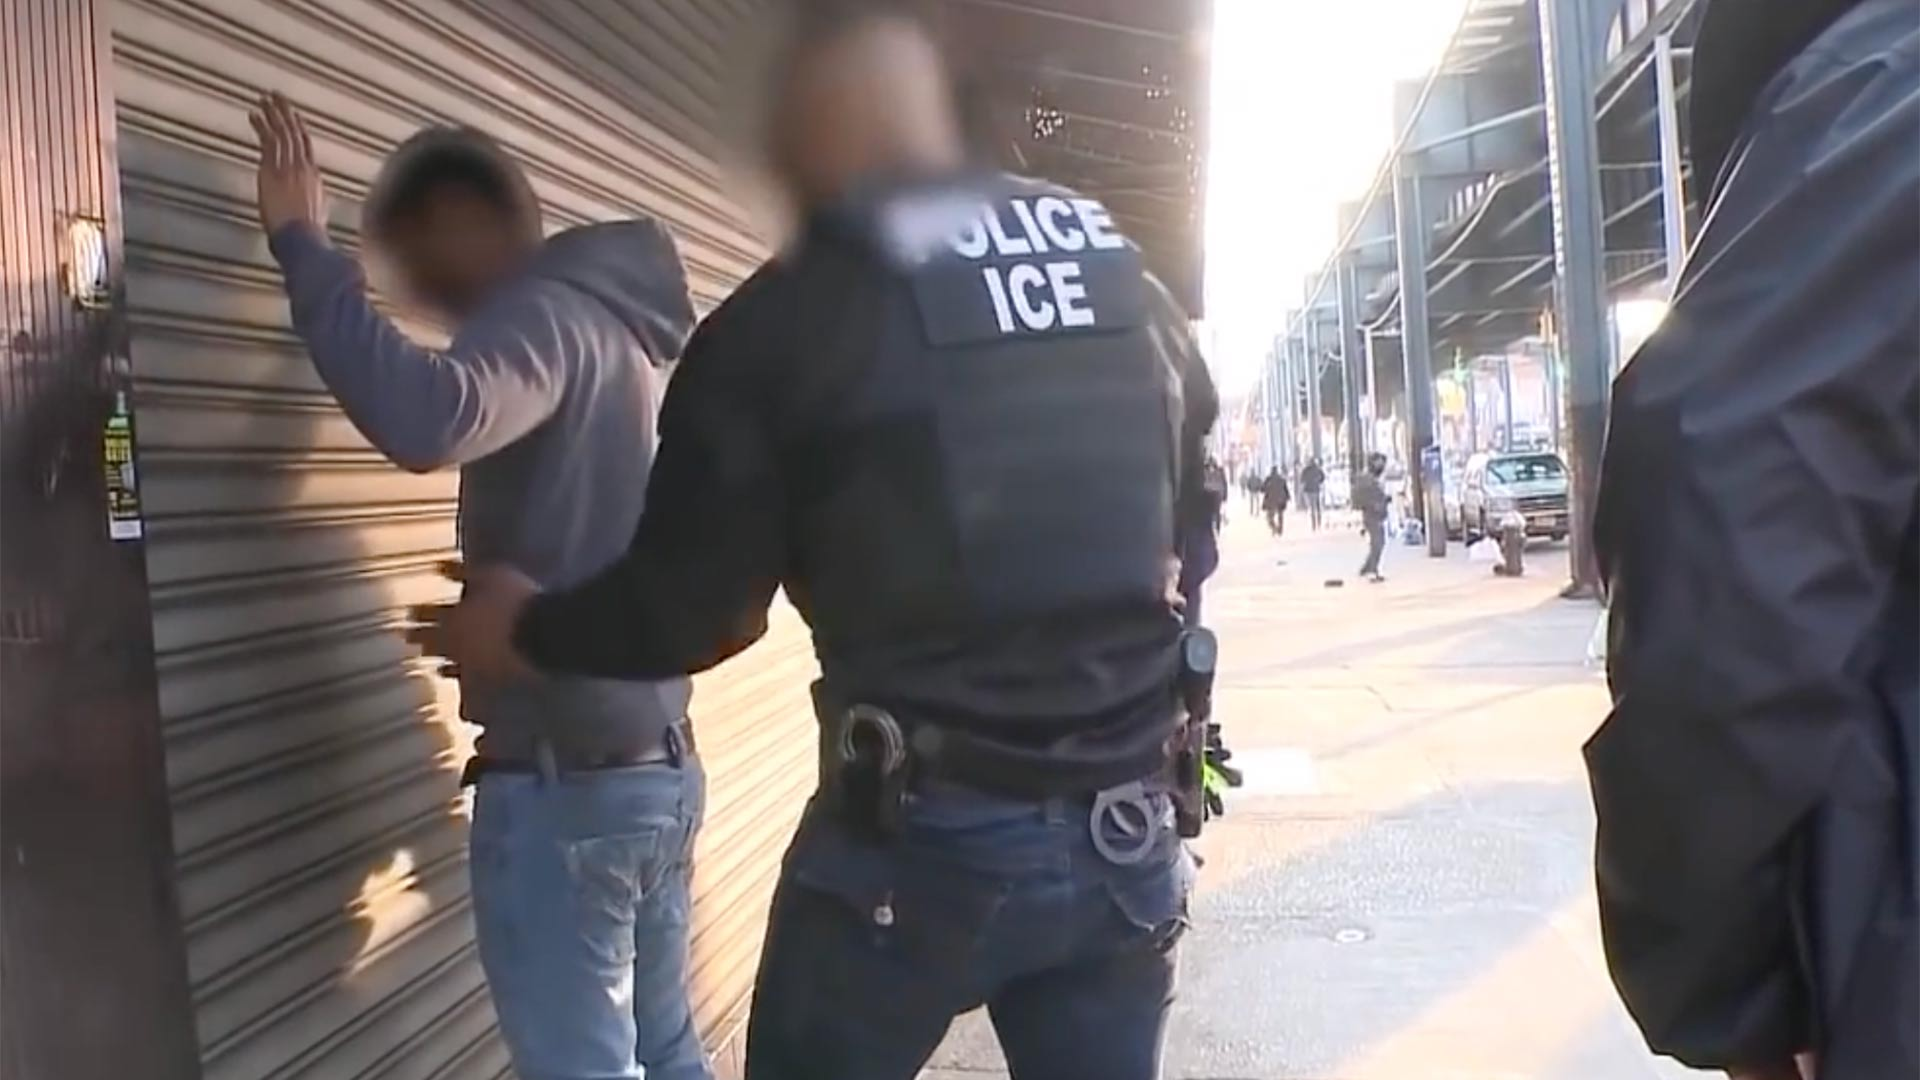 Ice Agents arrest a suspected undocumented immigrant. (May, 2018)